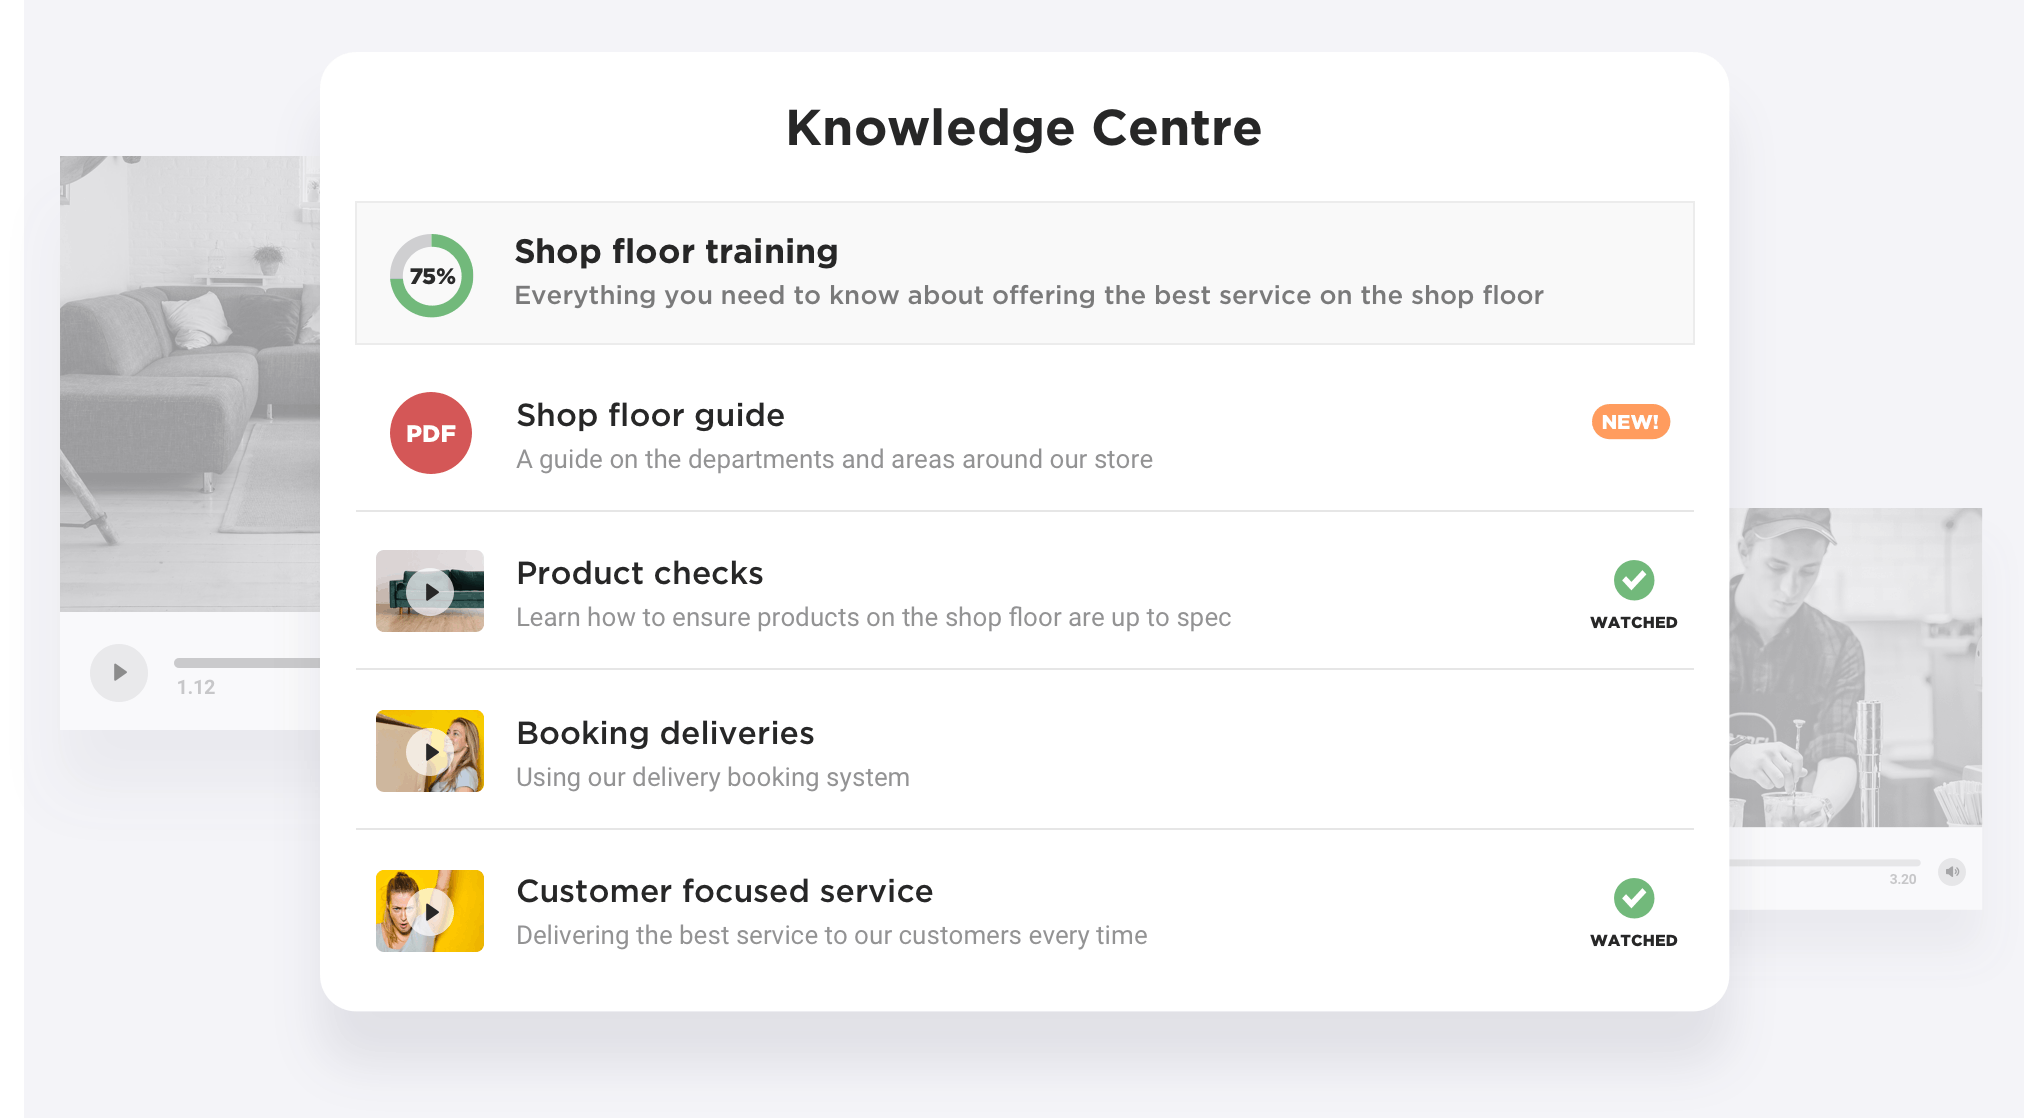 RetailOS employee knowledge centre